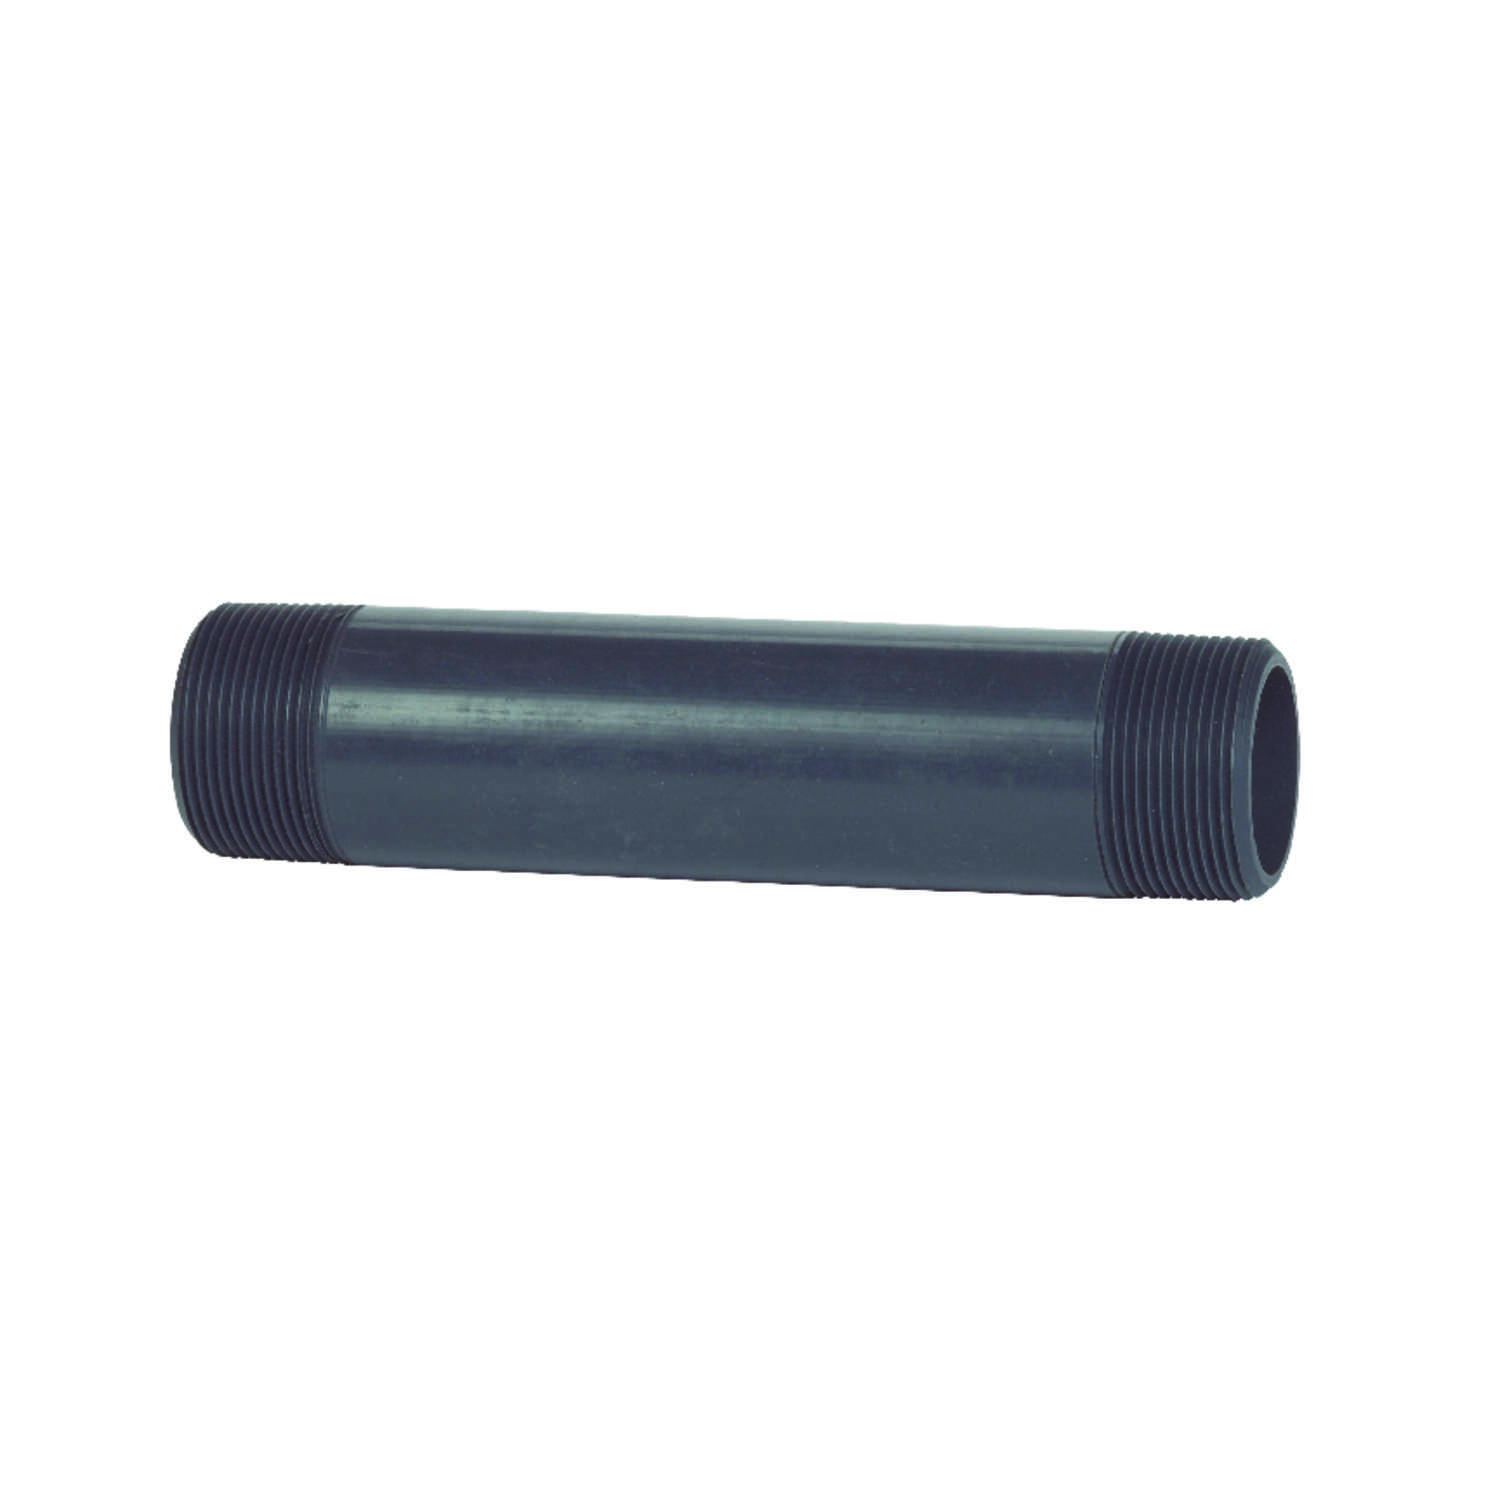 B&K  Schedule 80  1/2 in. MPT   x 1/2 in. Dia. MPT  PVC  For Pressure Applications Pipe Nipple